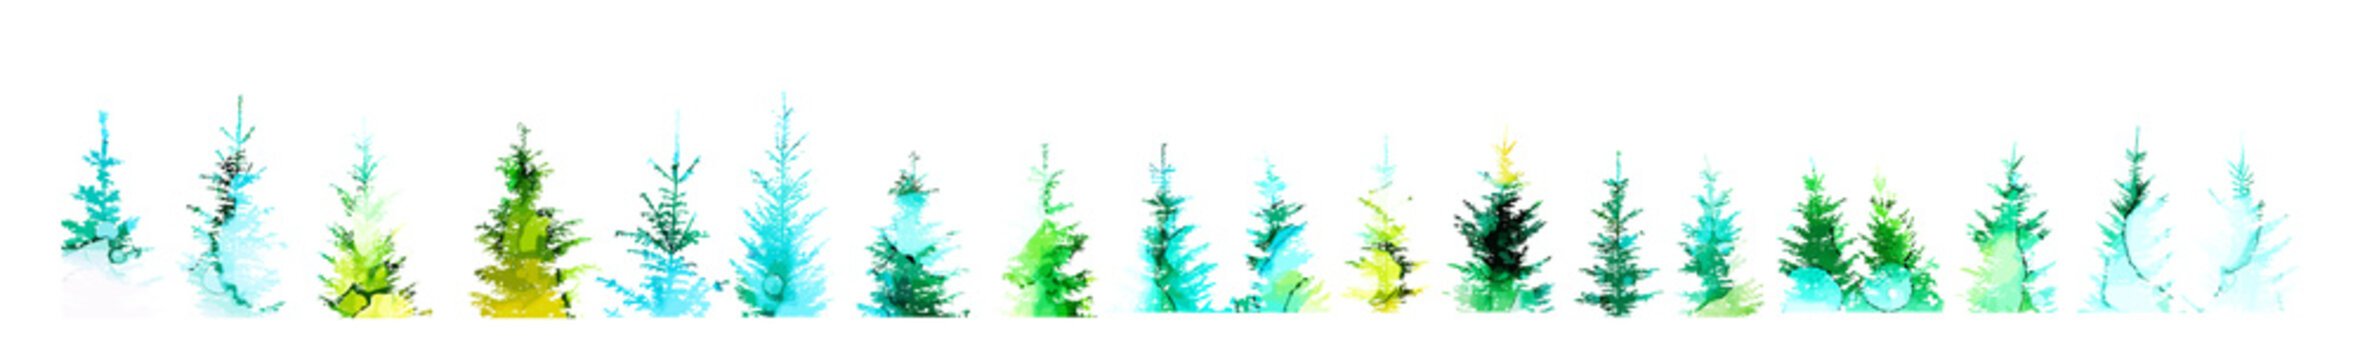 Set of picturesque Christmas trees. Mixed media. Vector illustration